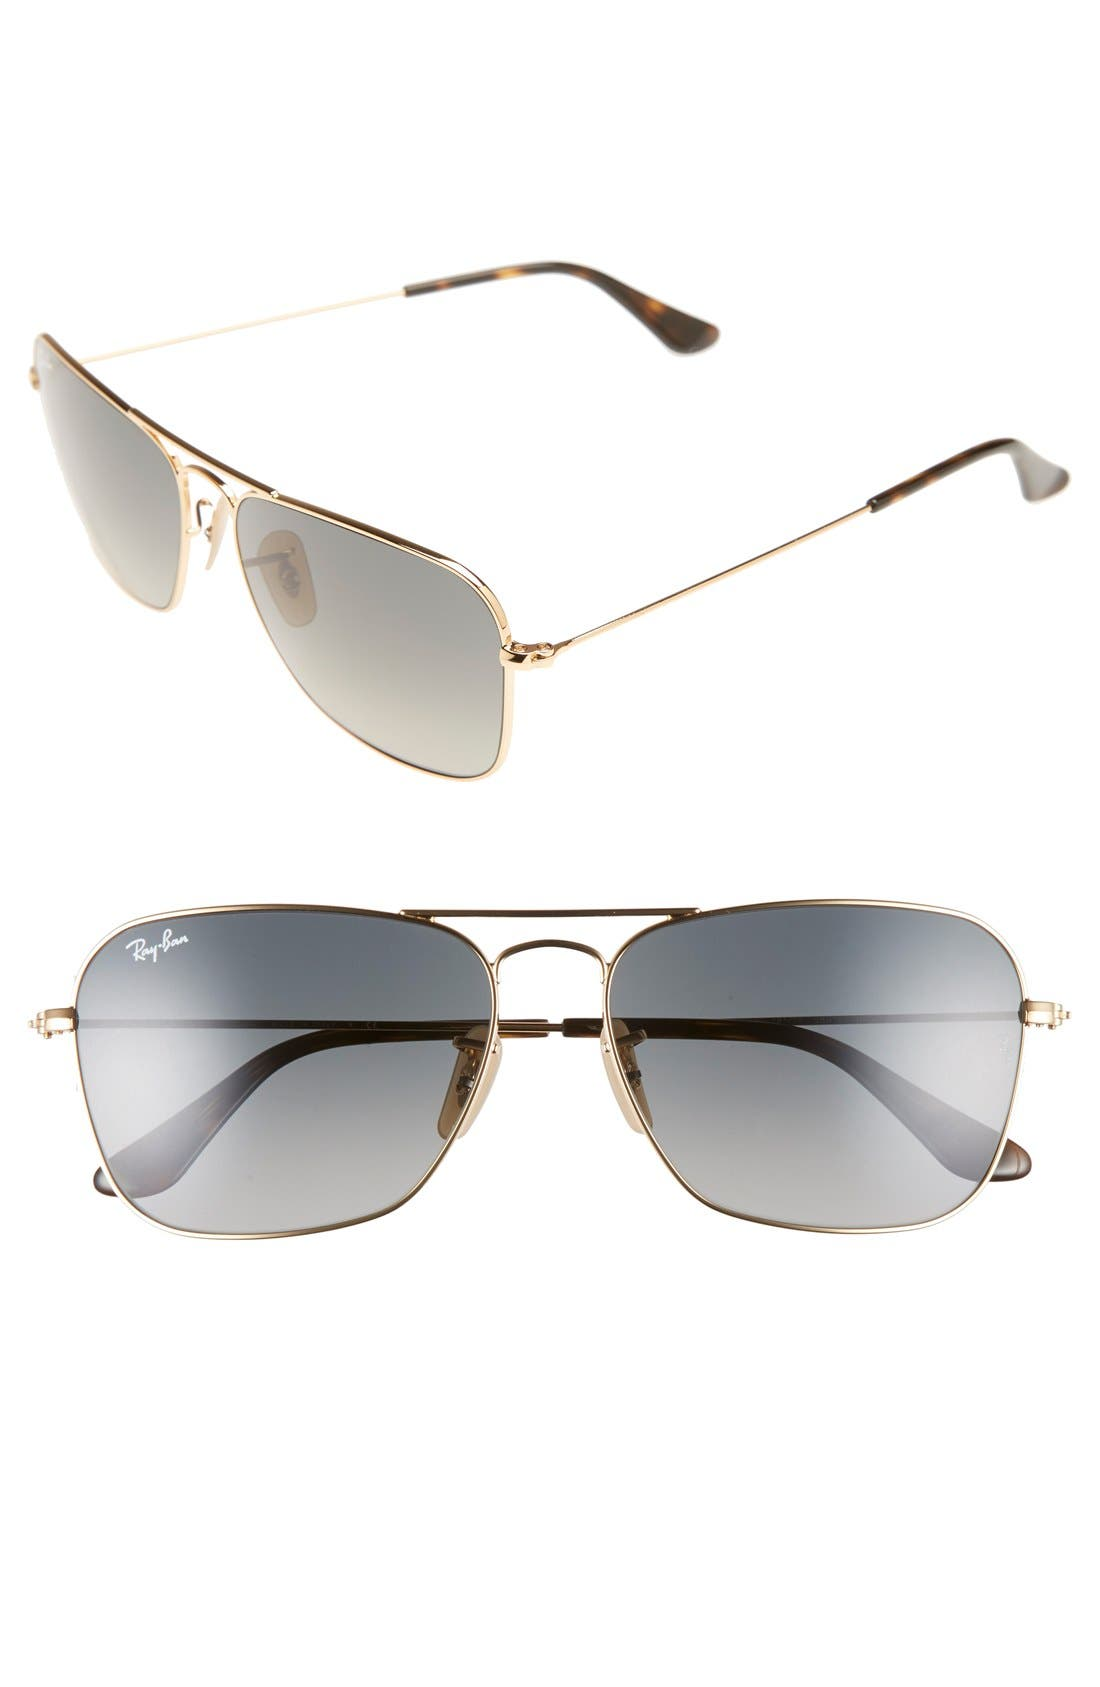 Caravan 58mm Aviator Sunglasses,                             Main thumbnail 1, color,                             GOLD/ GREY GRADIENT